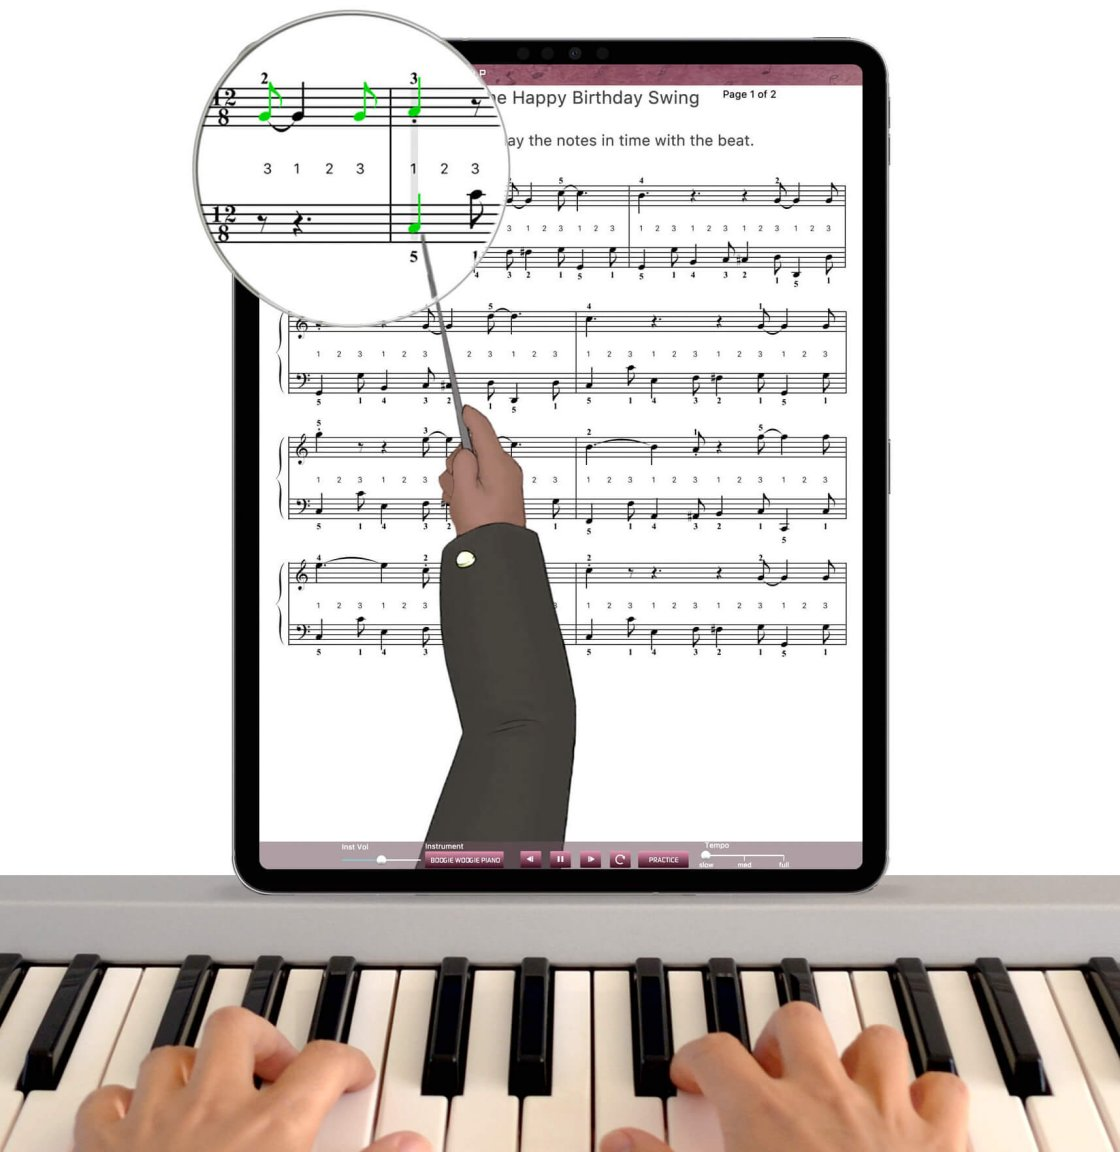 free piano lessons app on iPad with hands on piano keyboard